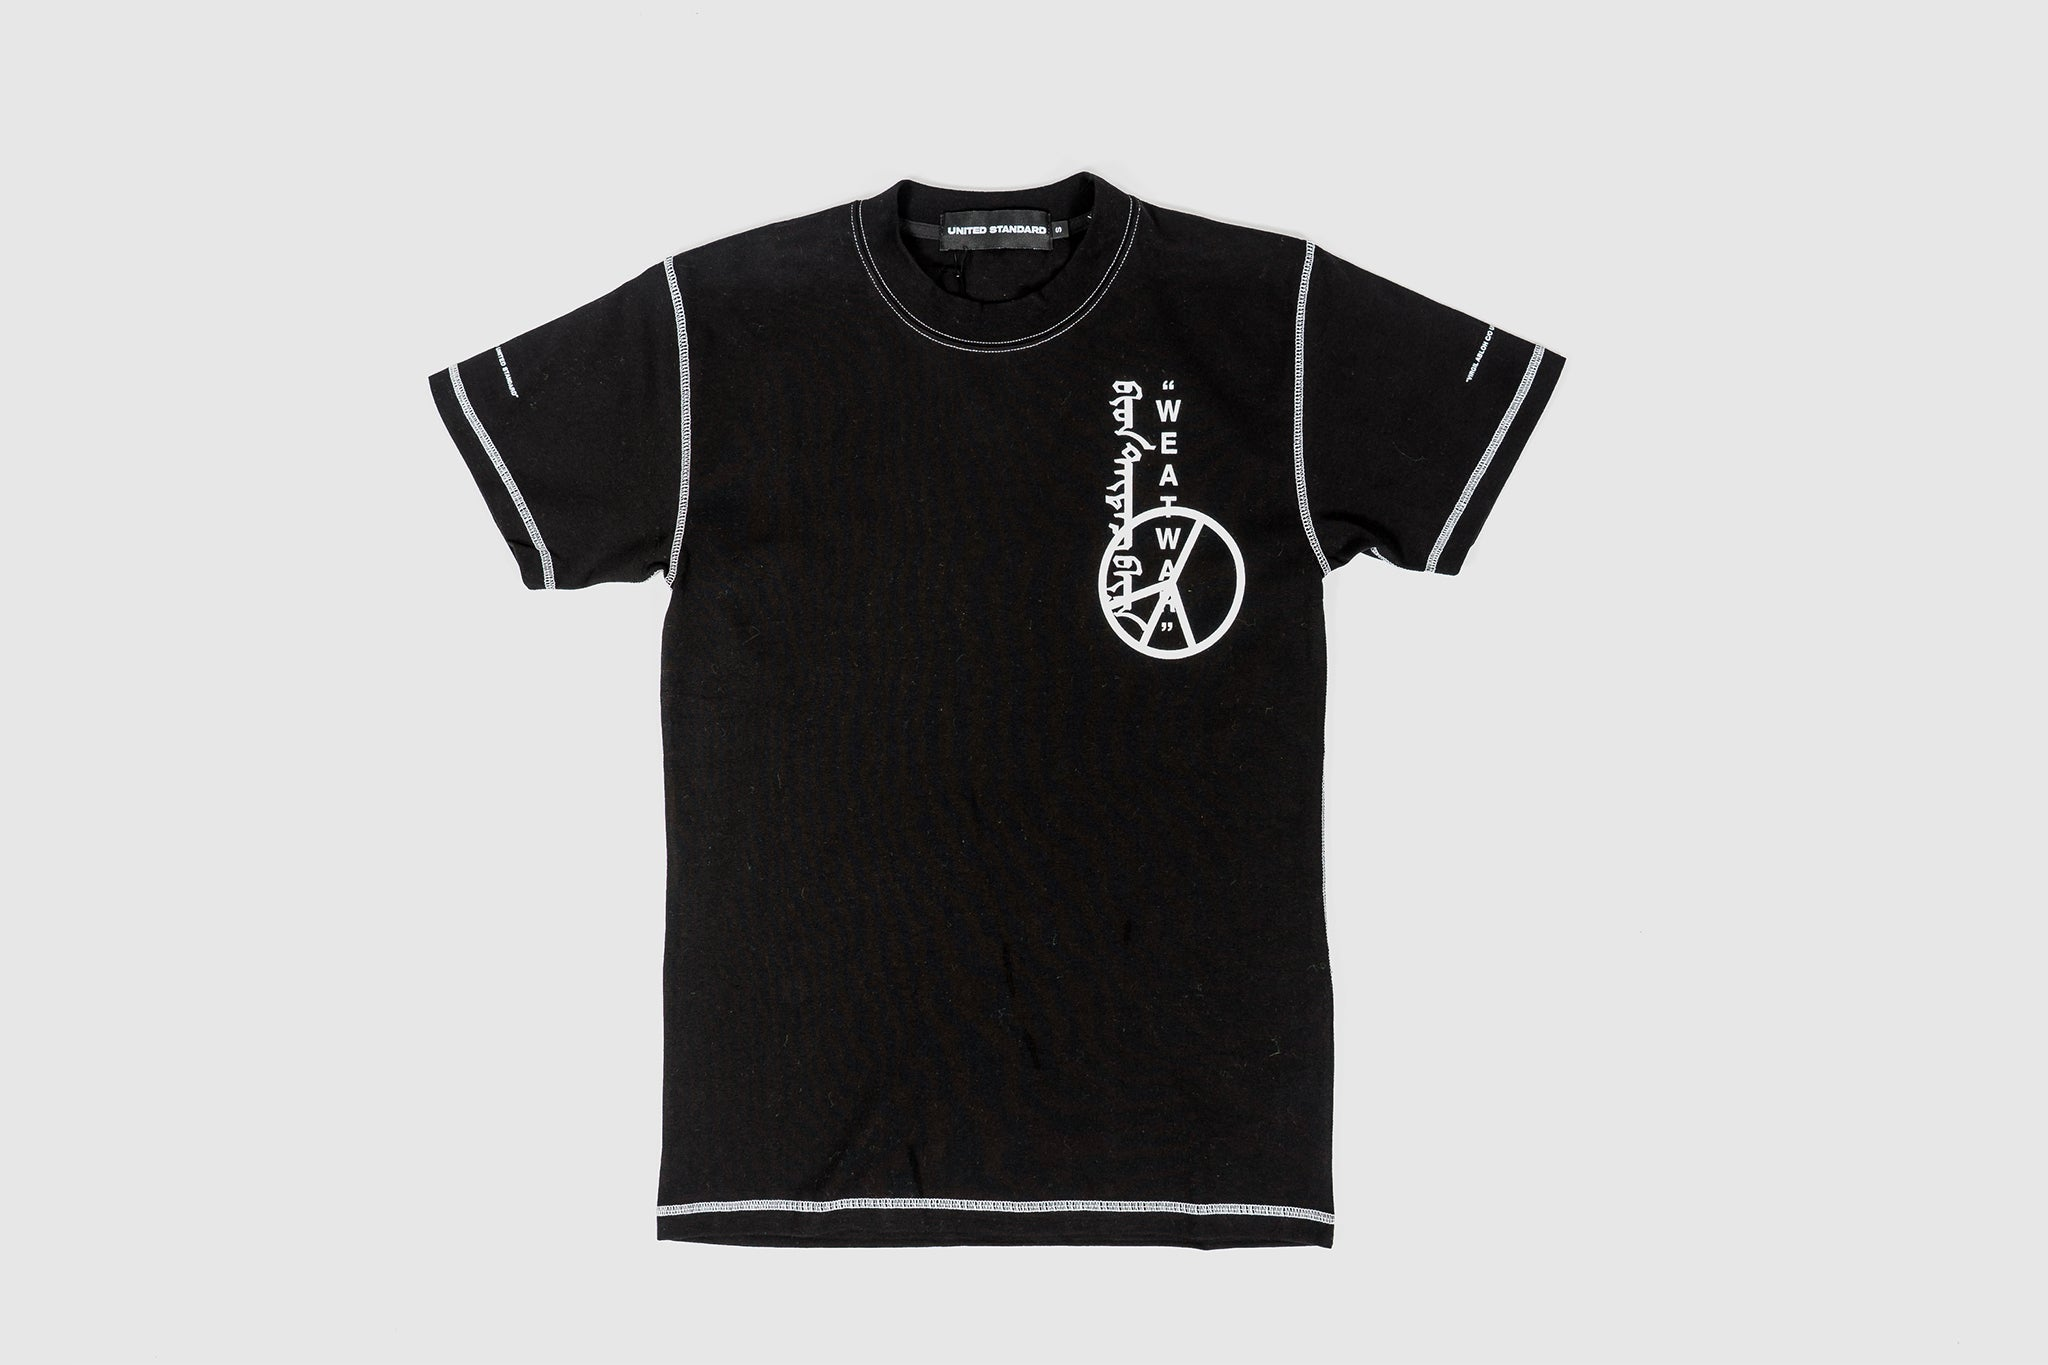 UNITED STANDARD X VIRGIL ABLOH WAR T-SHIRT